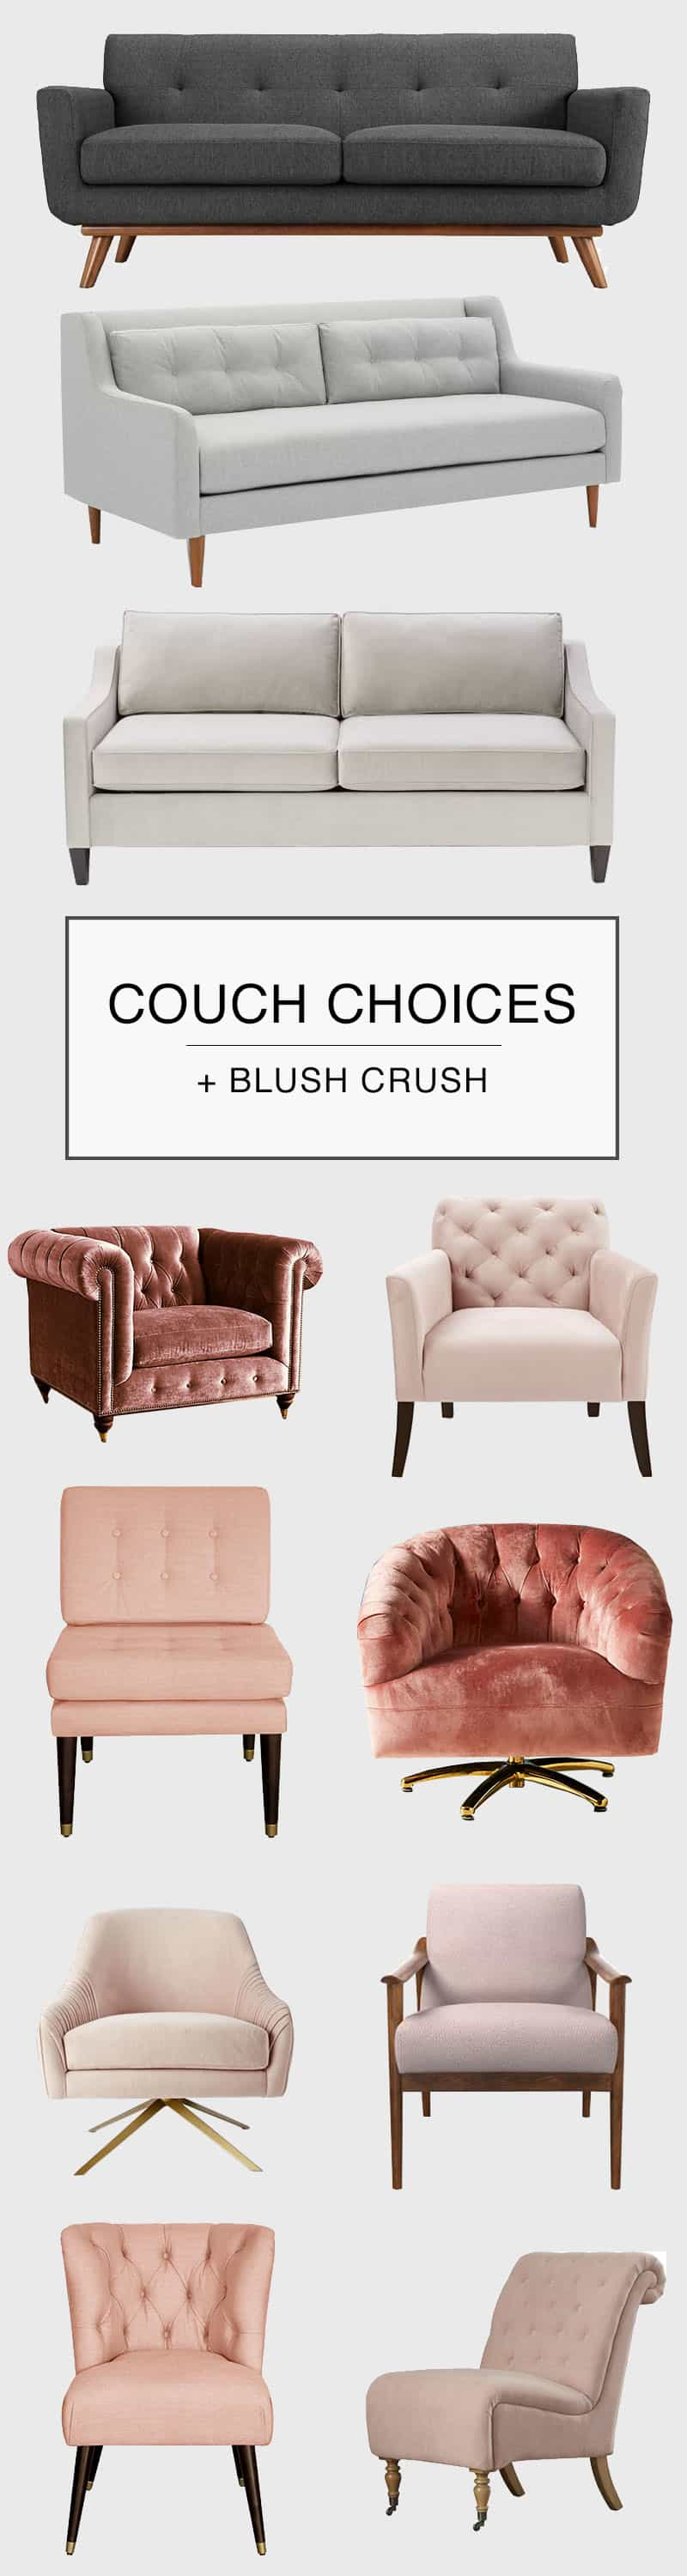 How to choose a couch and blush crush!